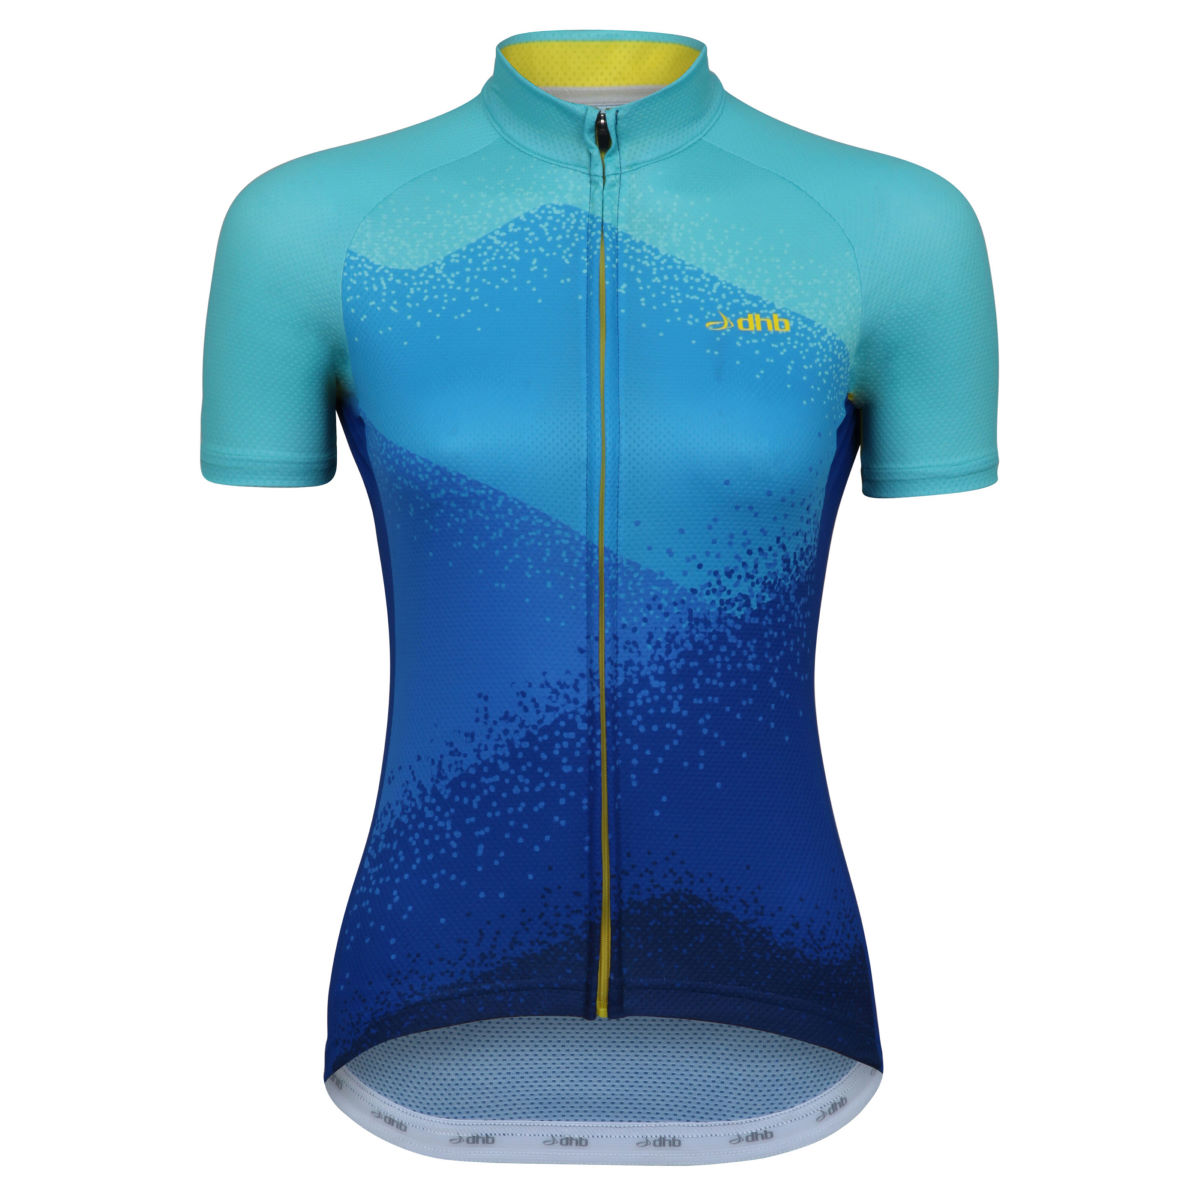 Maillot Femme dhb Blok Haze (manches courtes) - 8 UK Blue/Yellow